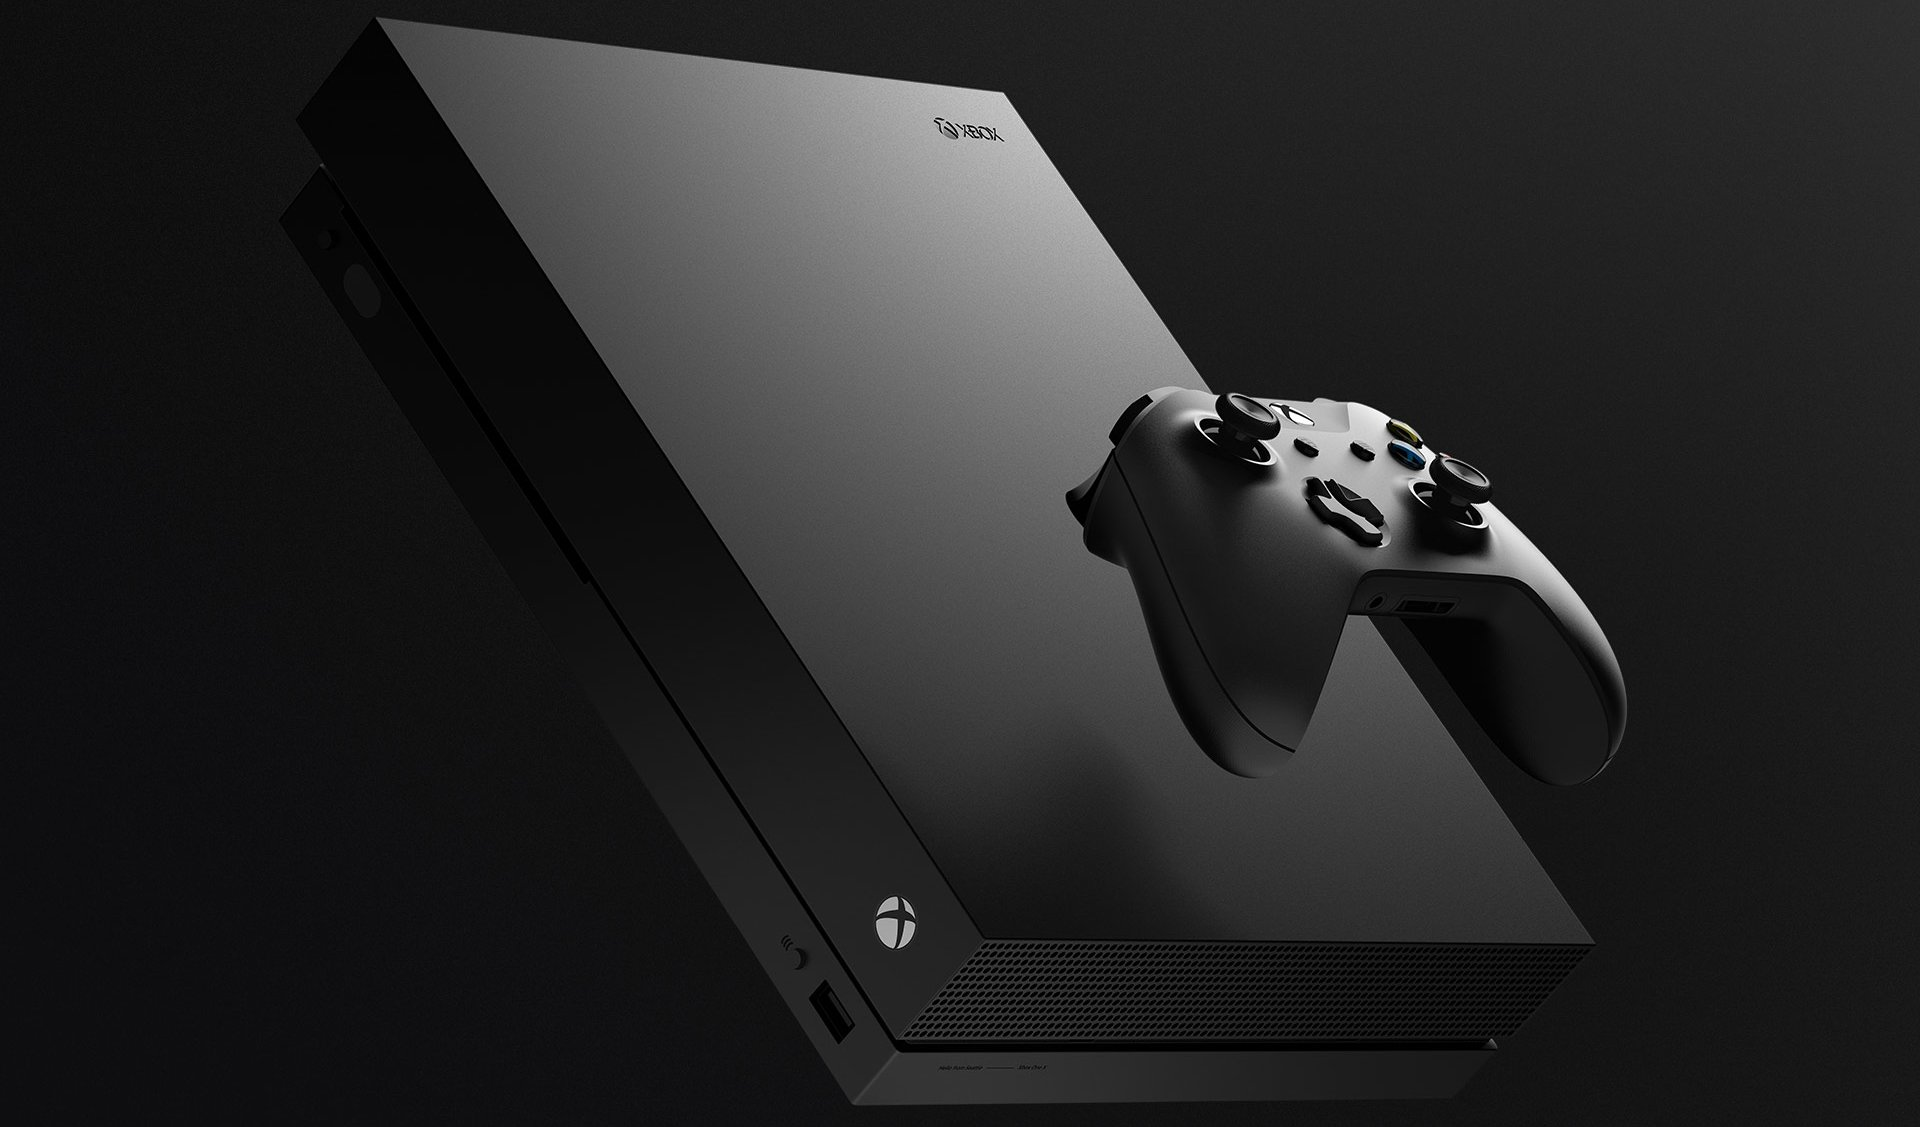 xbox one x release date